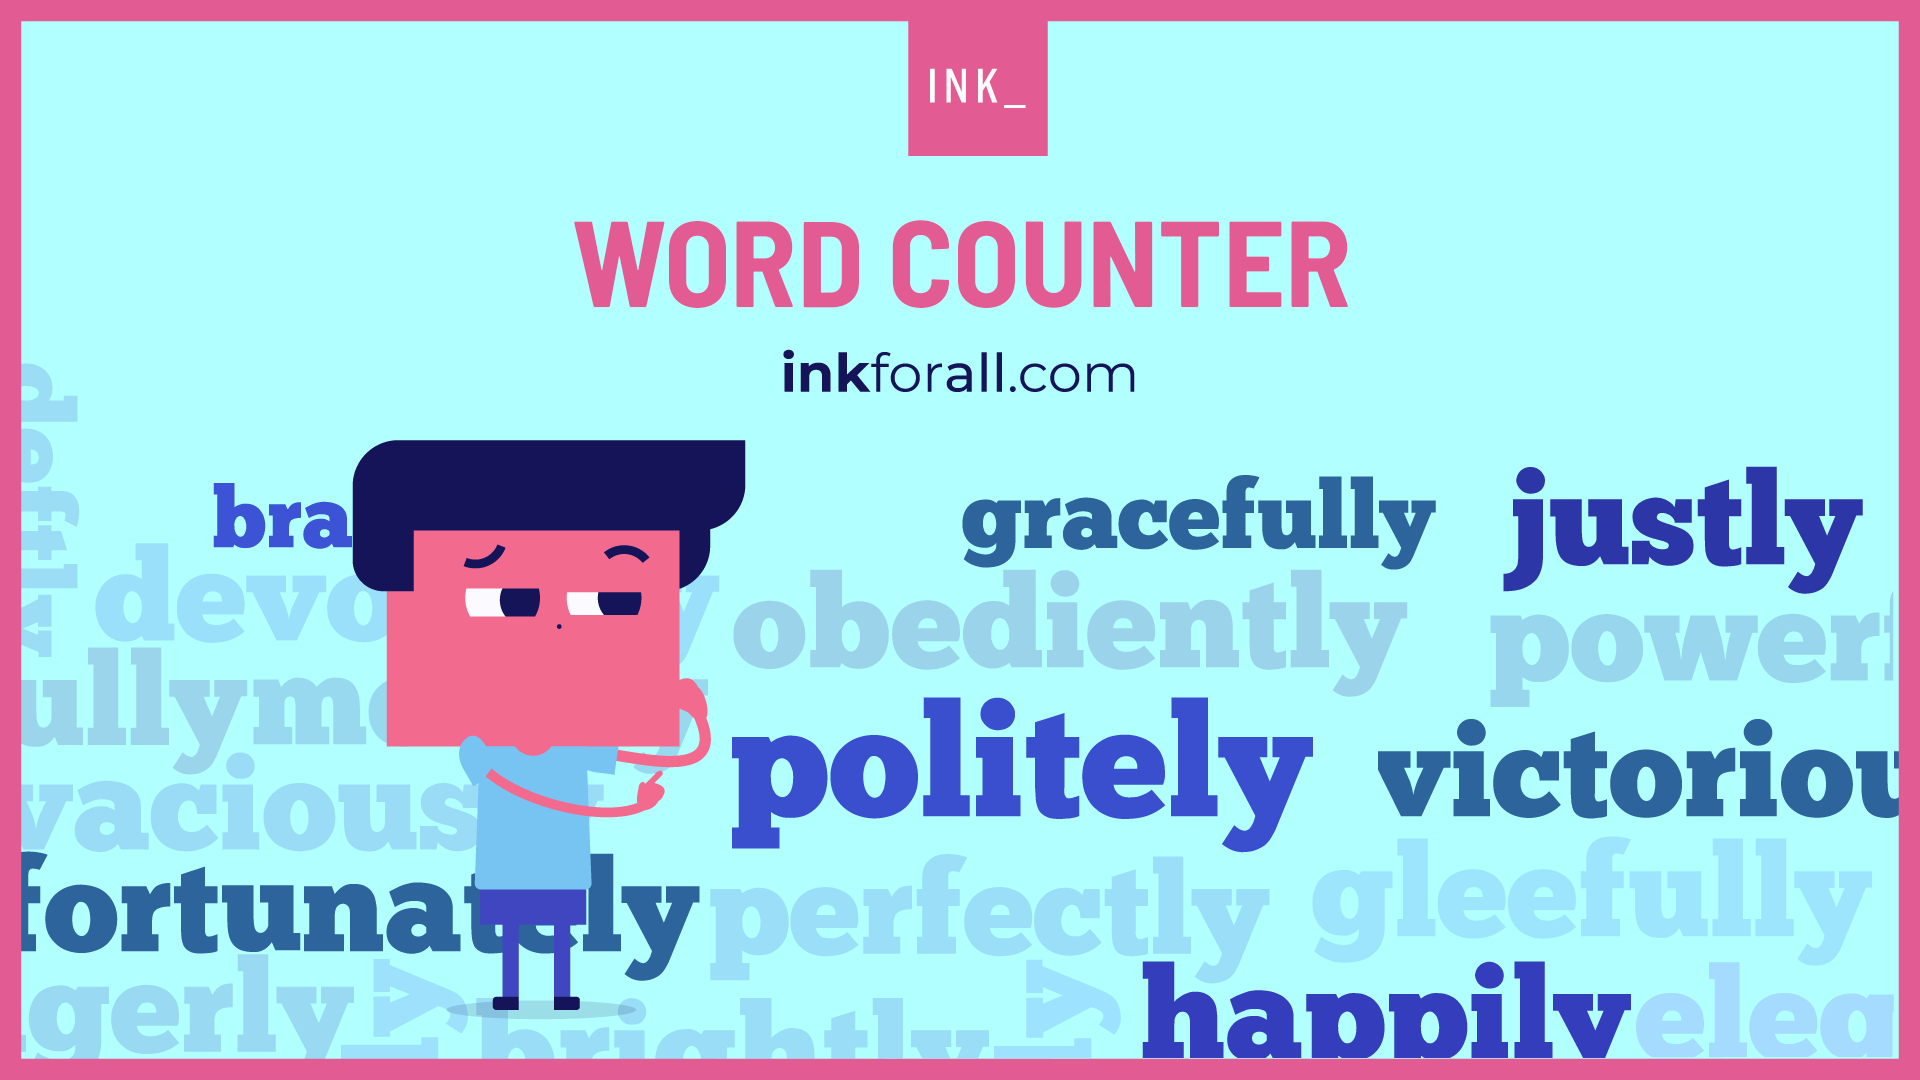 Word counter